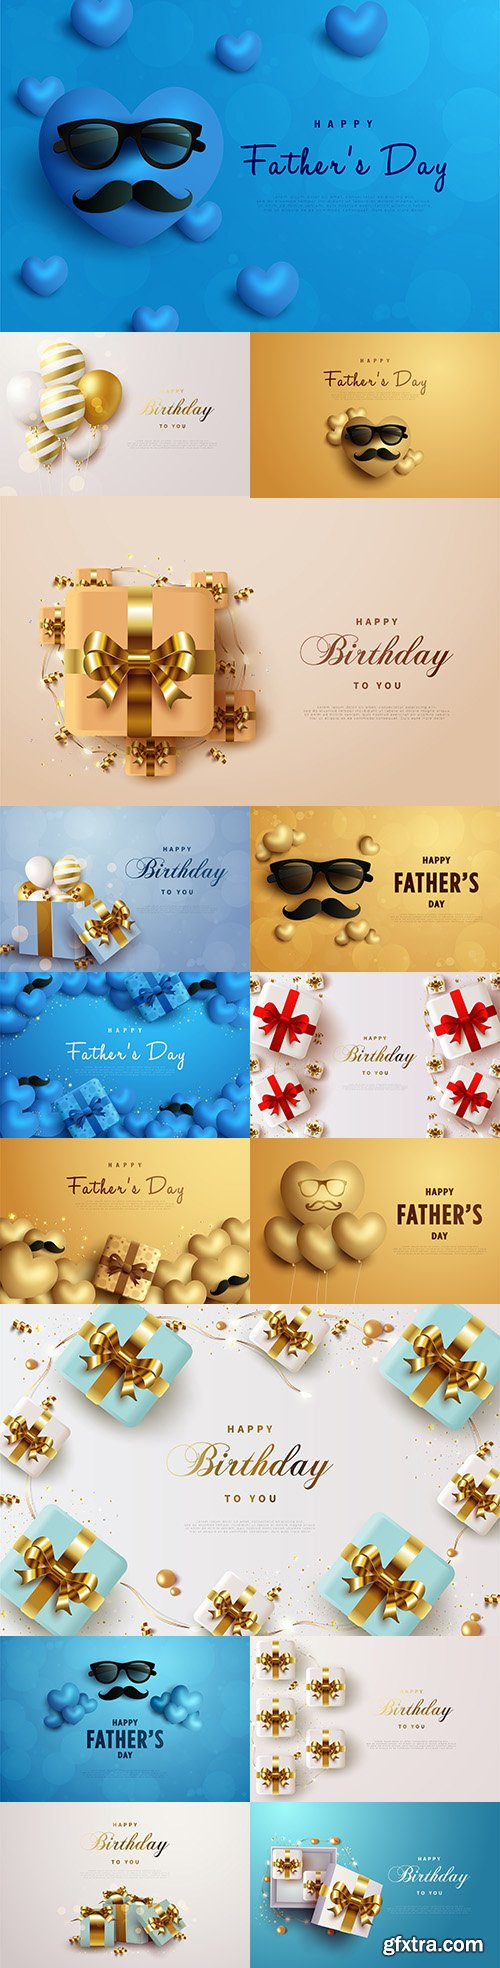 Birthday and father's day holiday illustrations with gifts